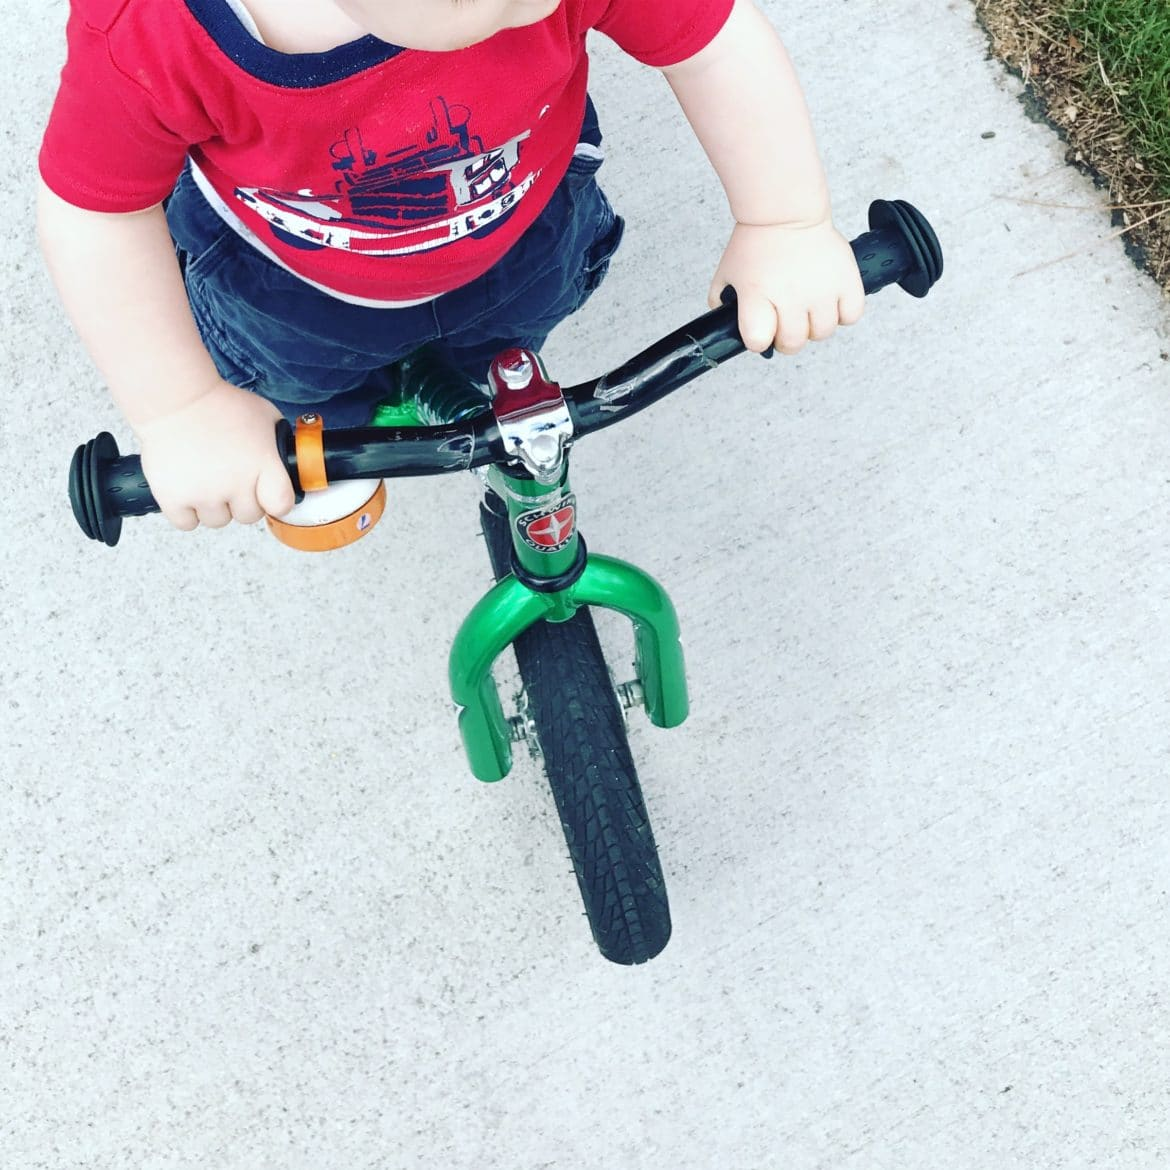 Balance Bikes: The Secret to Learning to Riding a Bike